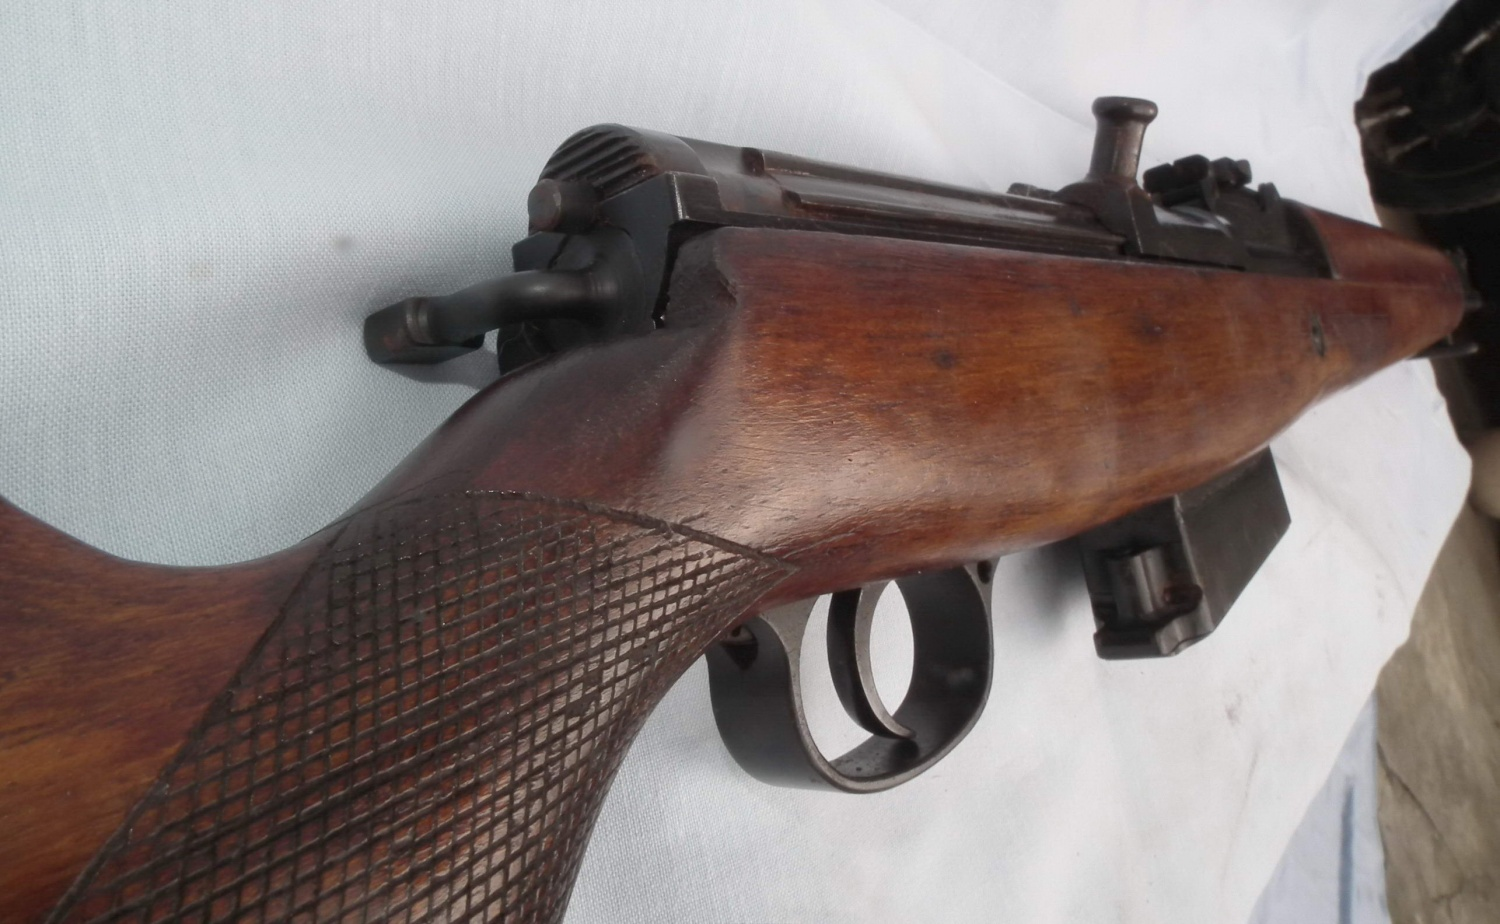 A departing picture of the AGR prototype. Note checkering of the stock grip area.